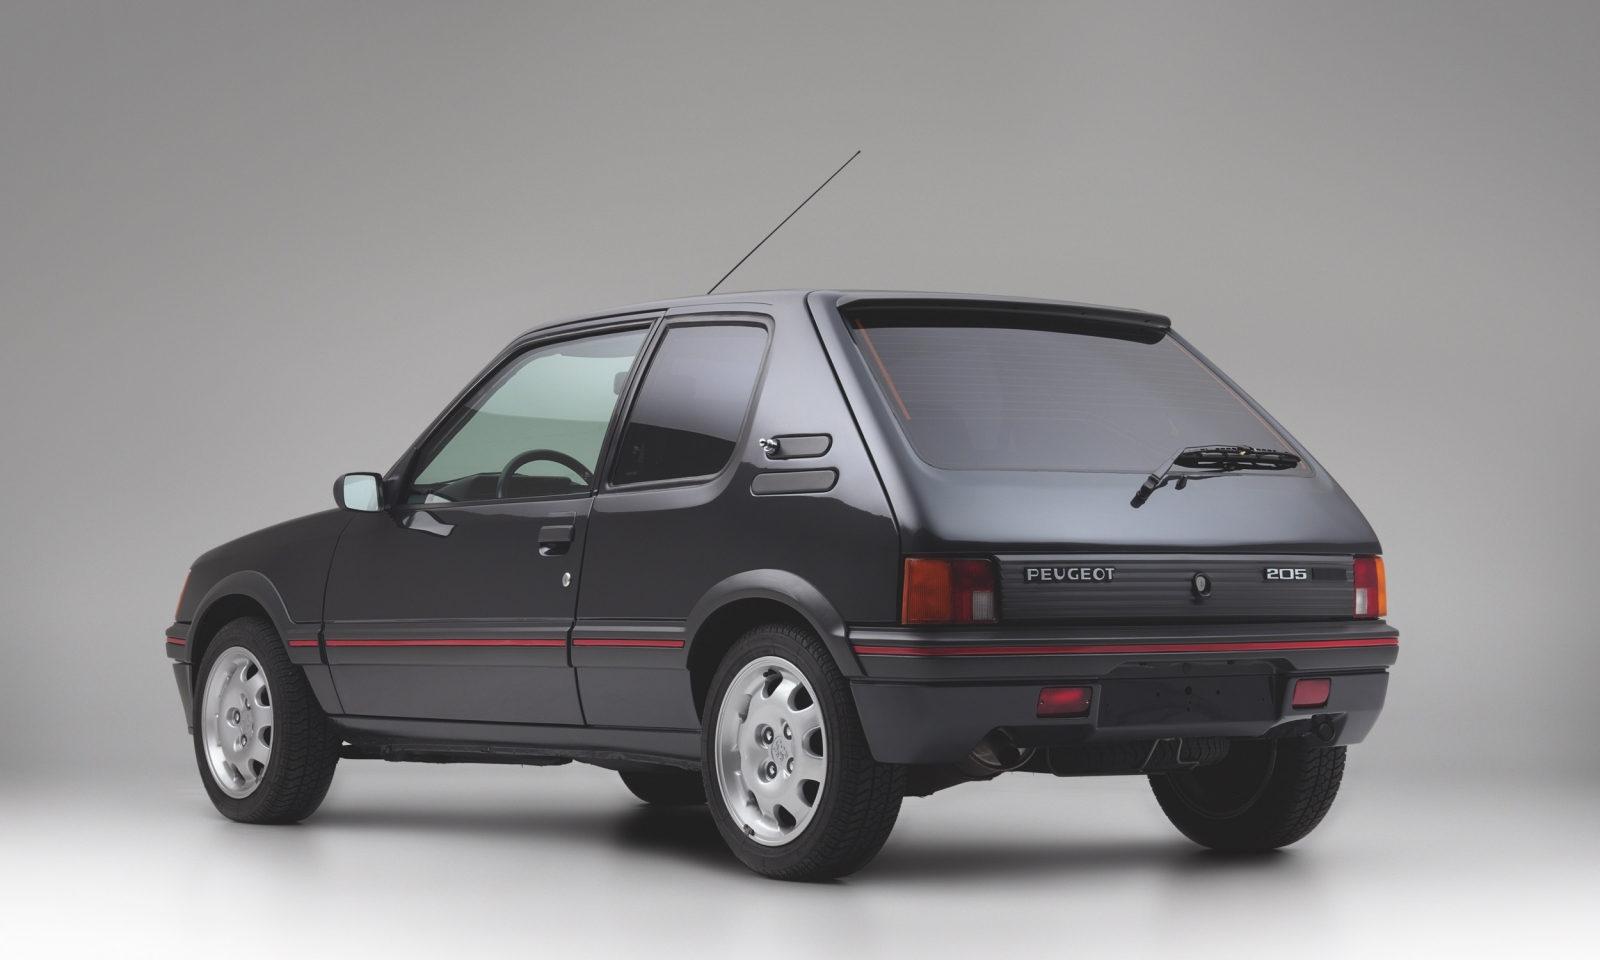 Armored_1990_Peugeot_205_GTI_0009